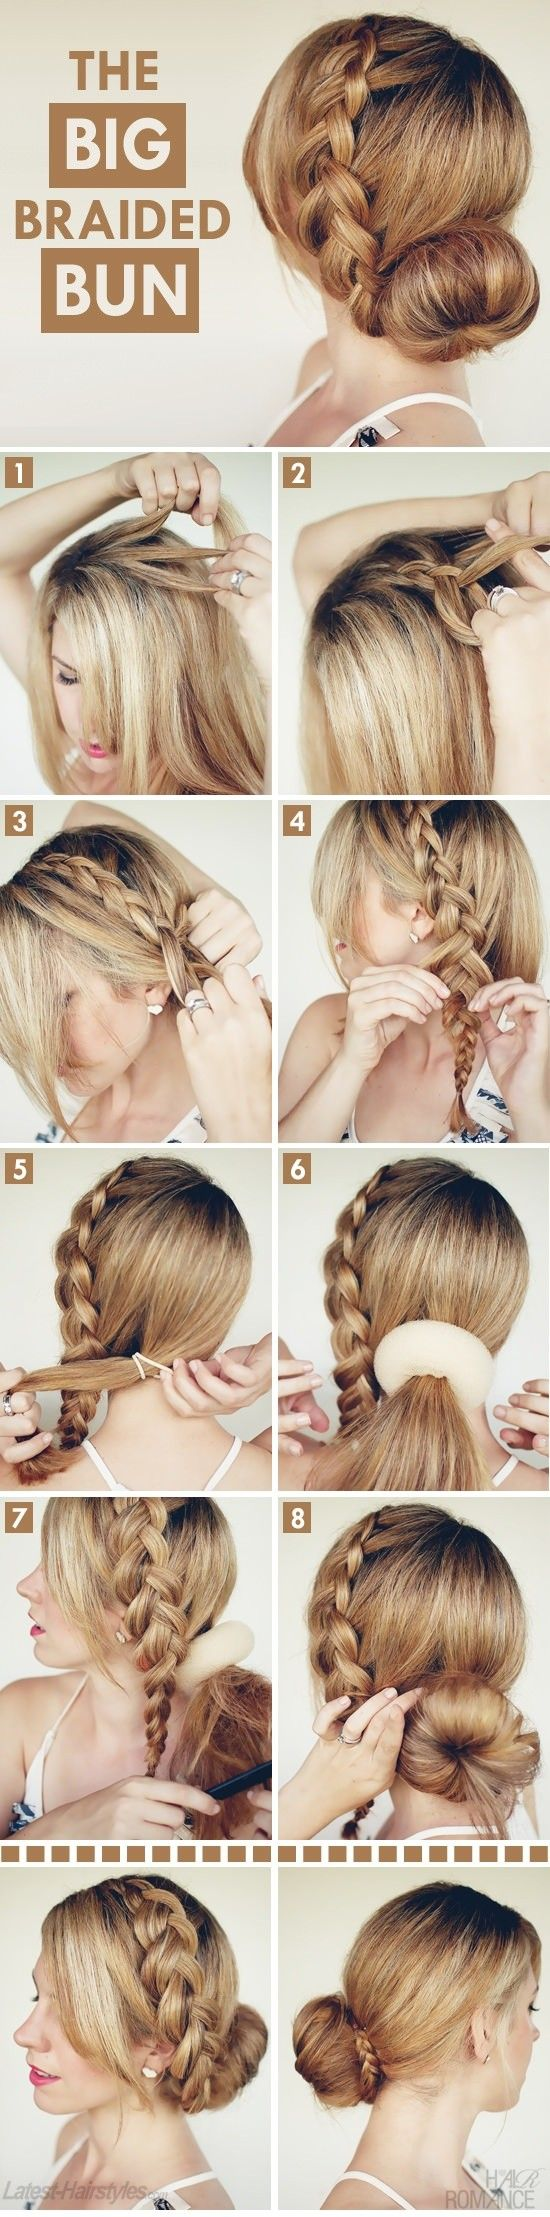 the big braided bun...I would totally do this!